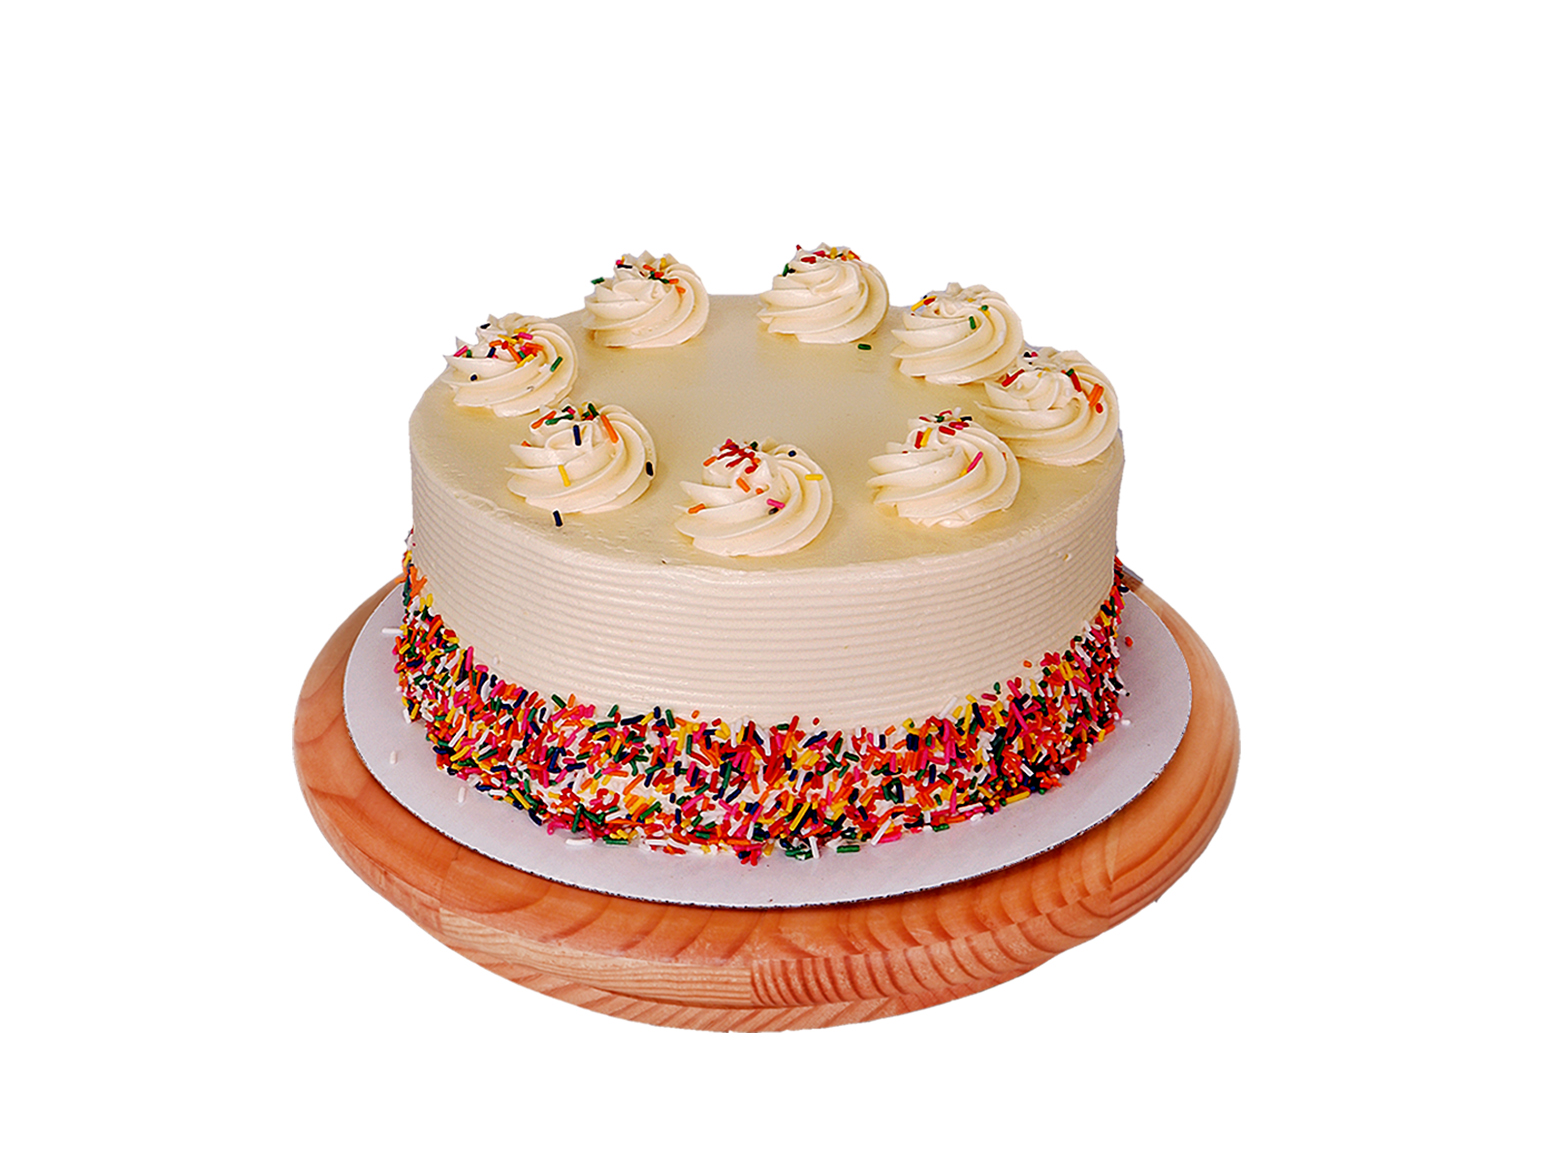 This Cake Says Happy Birthday In Dramatic Buttercream Rosette On Top And Candy Sprinkles Decorations Luscious Vanilla Is Filled With